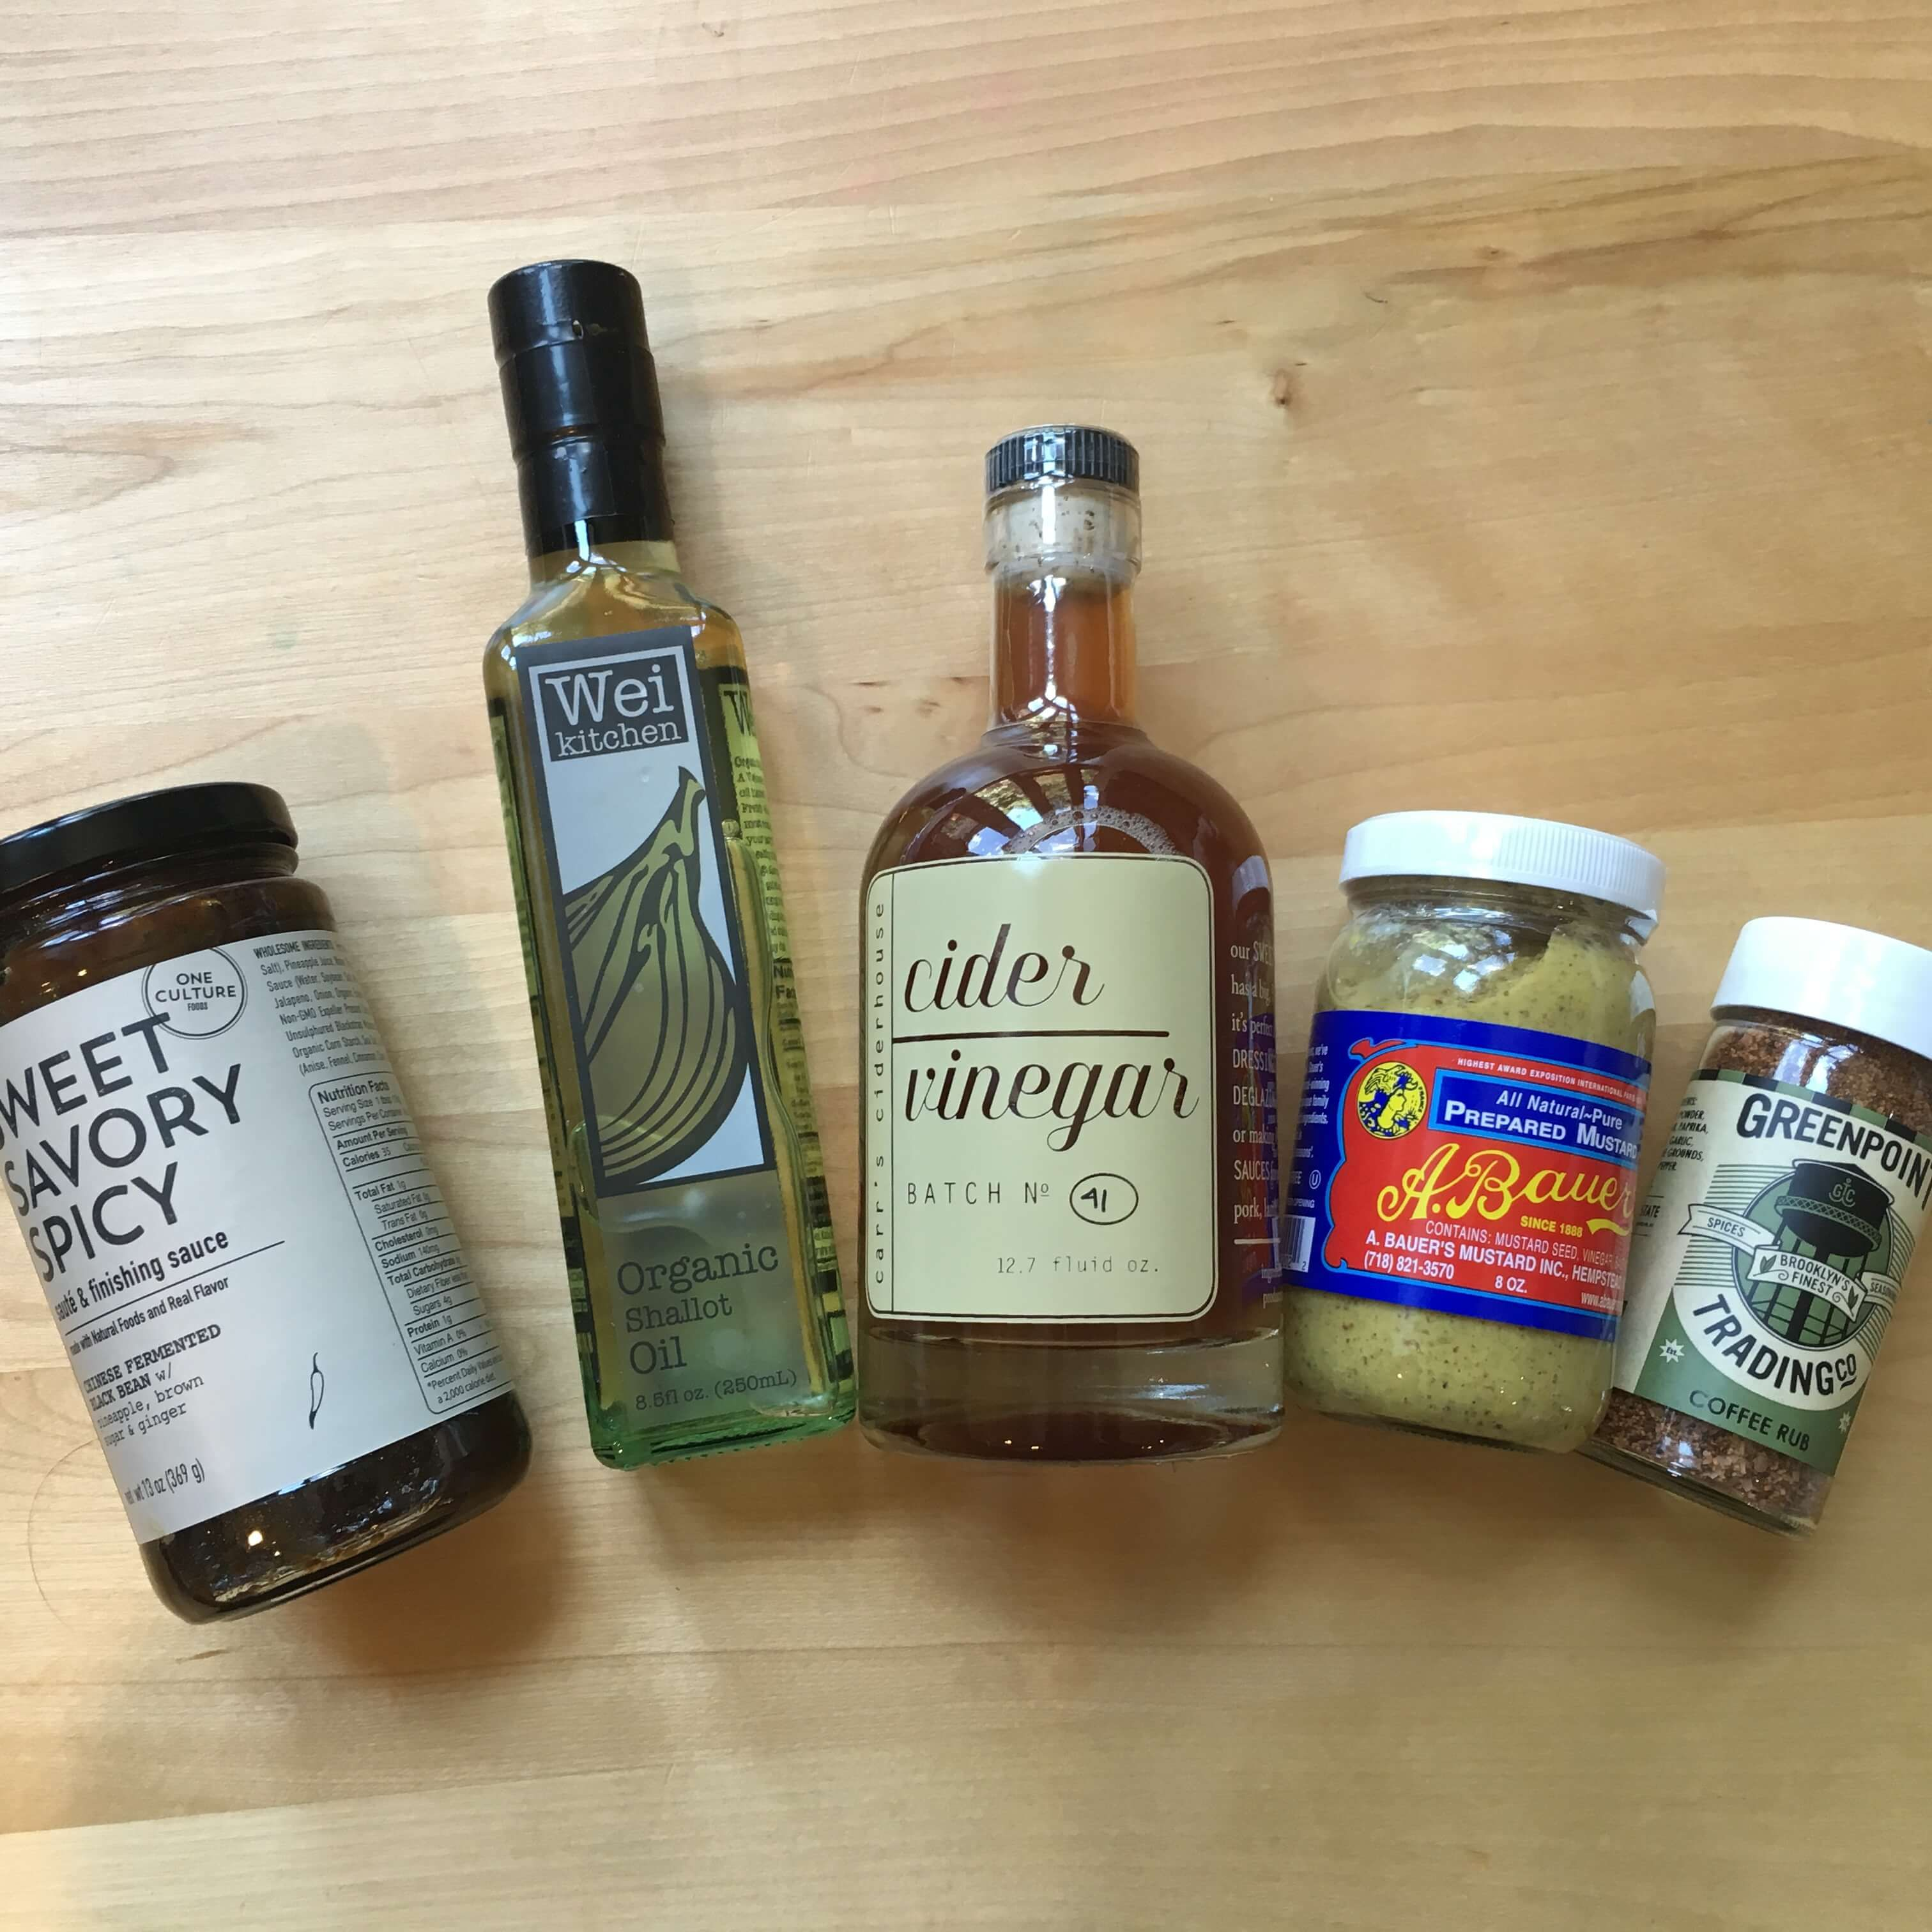 Check out our review of the September 2016 Mouth's Indie-Gredients box featuring artisan foodie delights + plus coupon code for 20% off your subscription!     Mouth Indie-Gredients Every Month September 2016 Subscription Box Review + Coupon →  https://hellosubscription.com/2016/10/mouth-indie-gredients-every-month-september-2016-subscription-box-review-coupon-p/ #MouthCom  #subscriptionbox